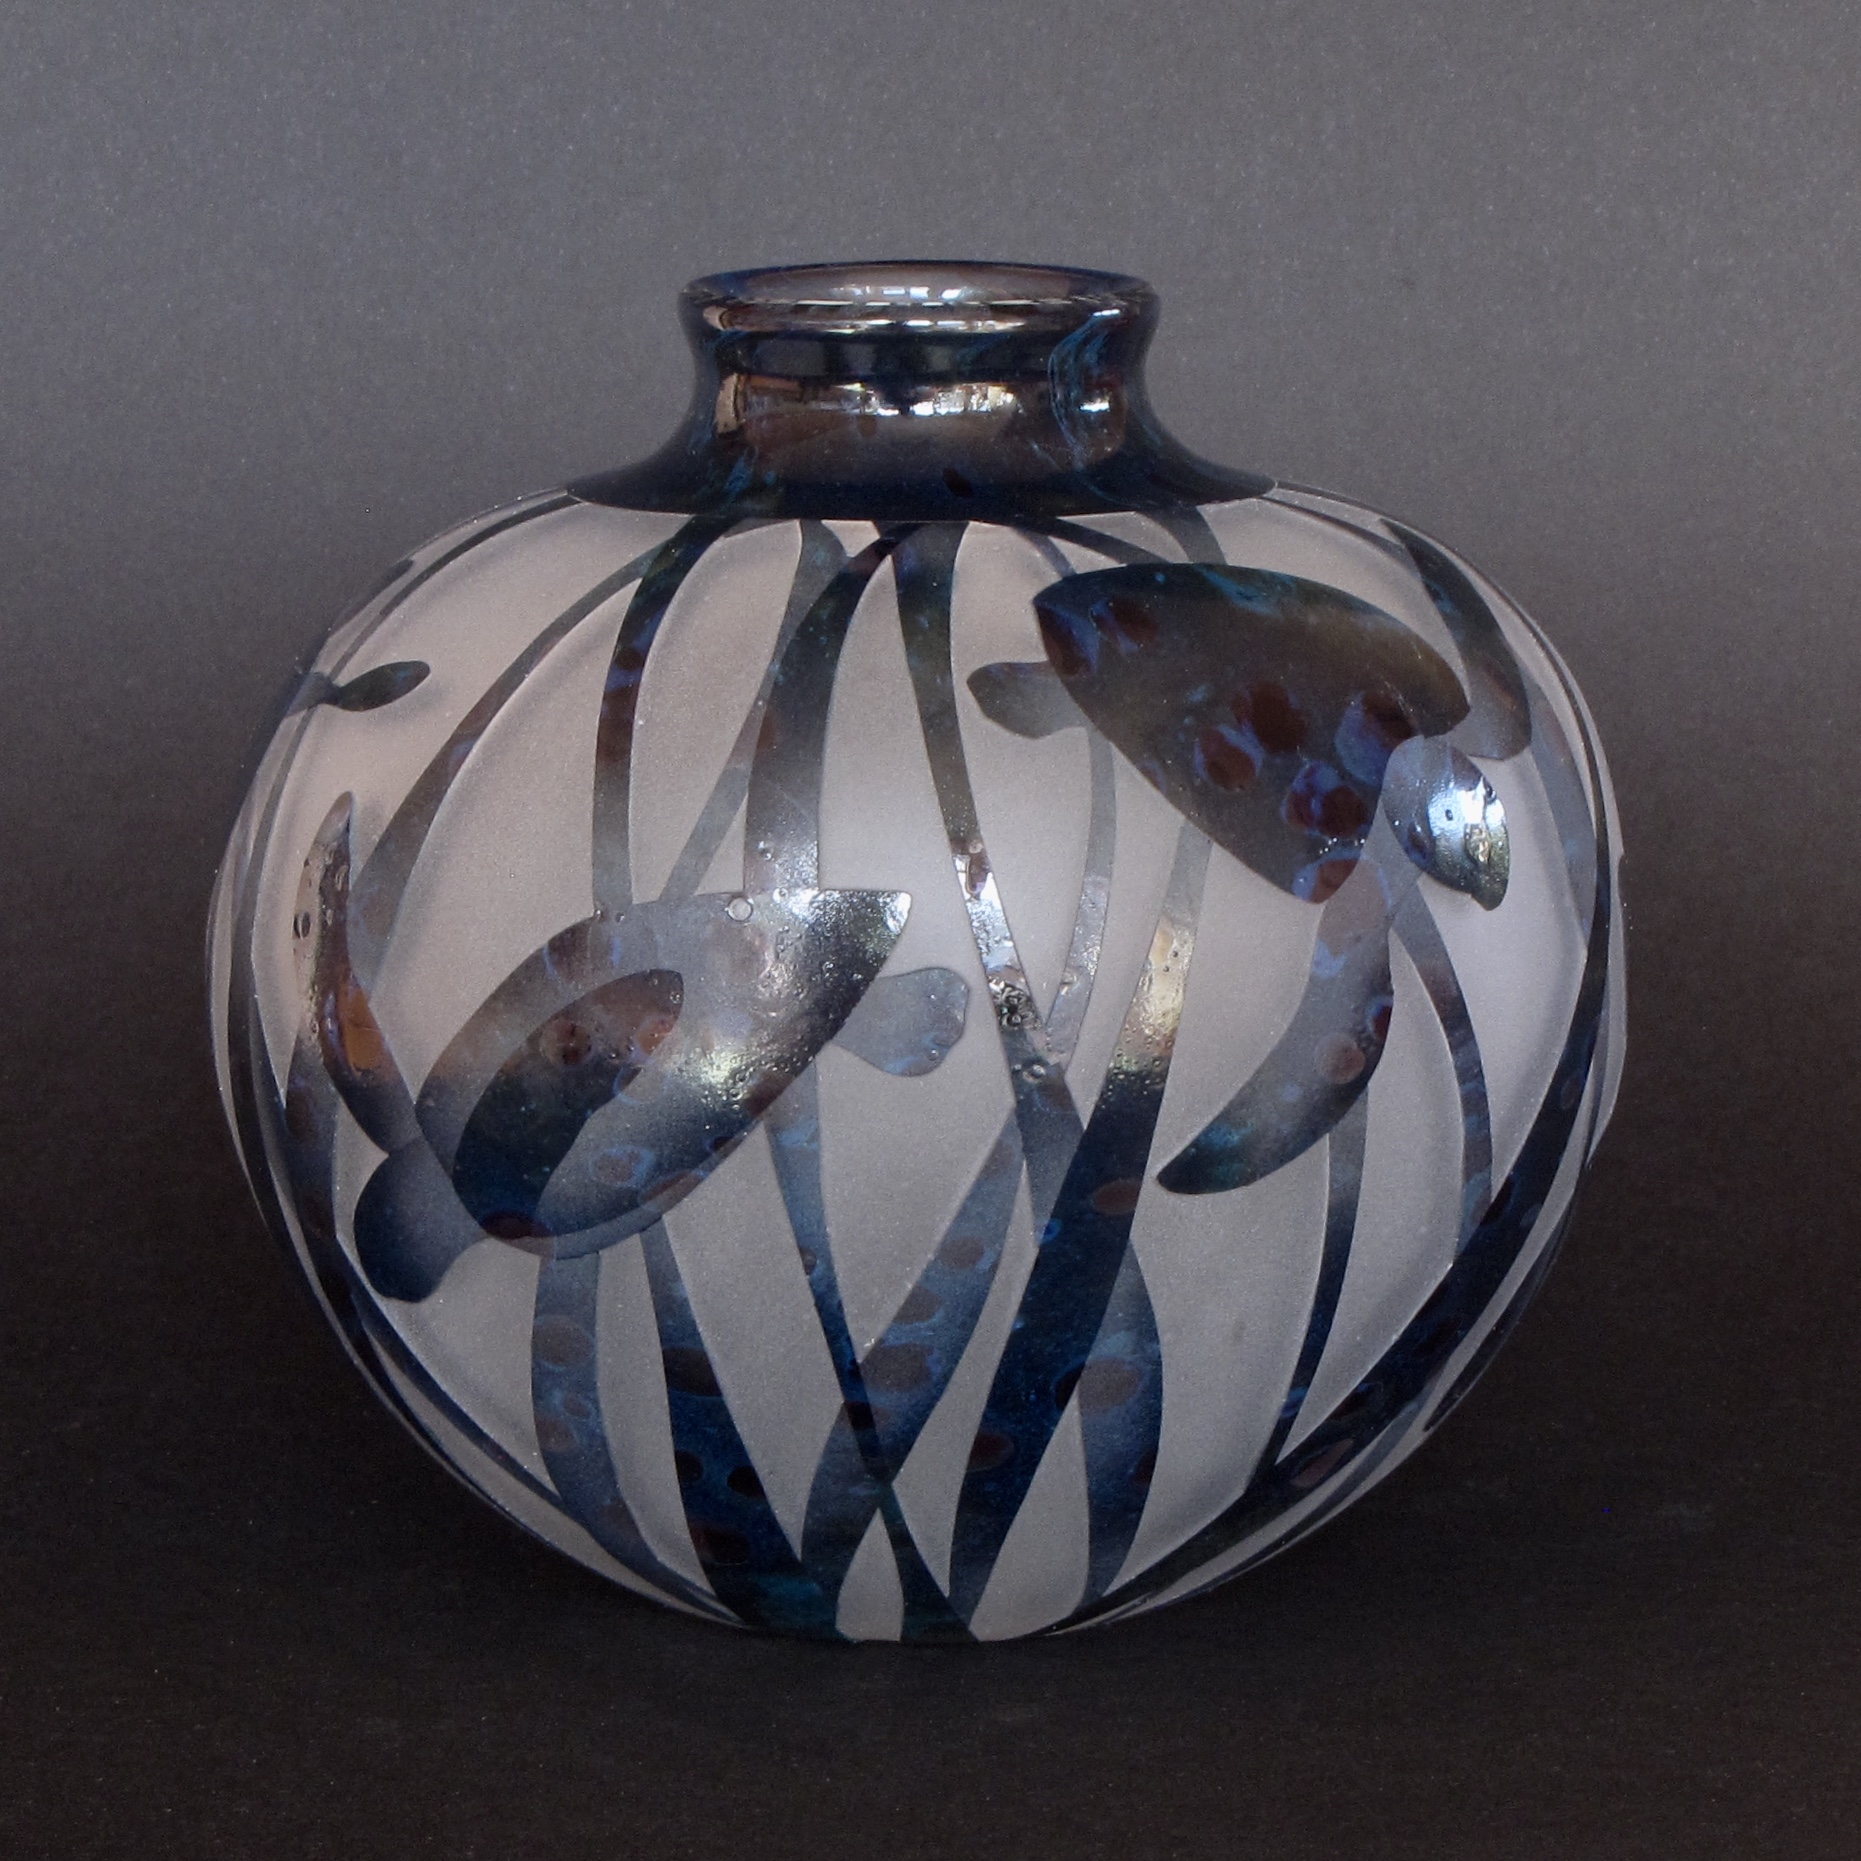 Turtles vase by Amanda Louden. Blown and etched glass. H 13.5cm x W 13cm